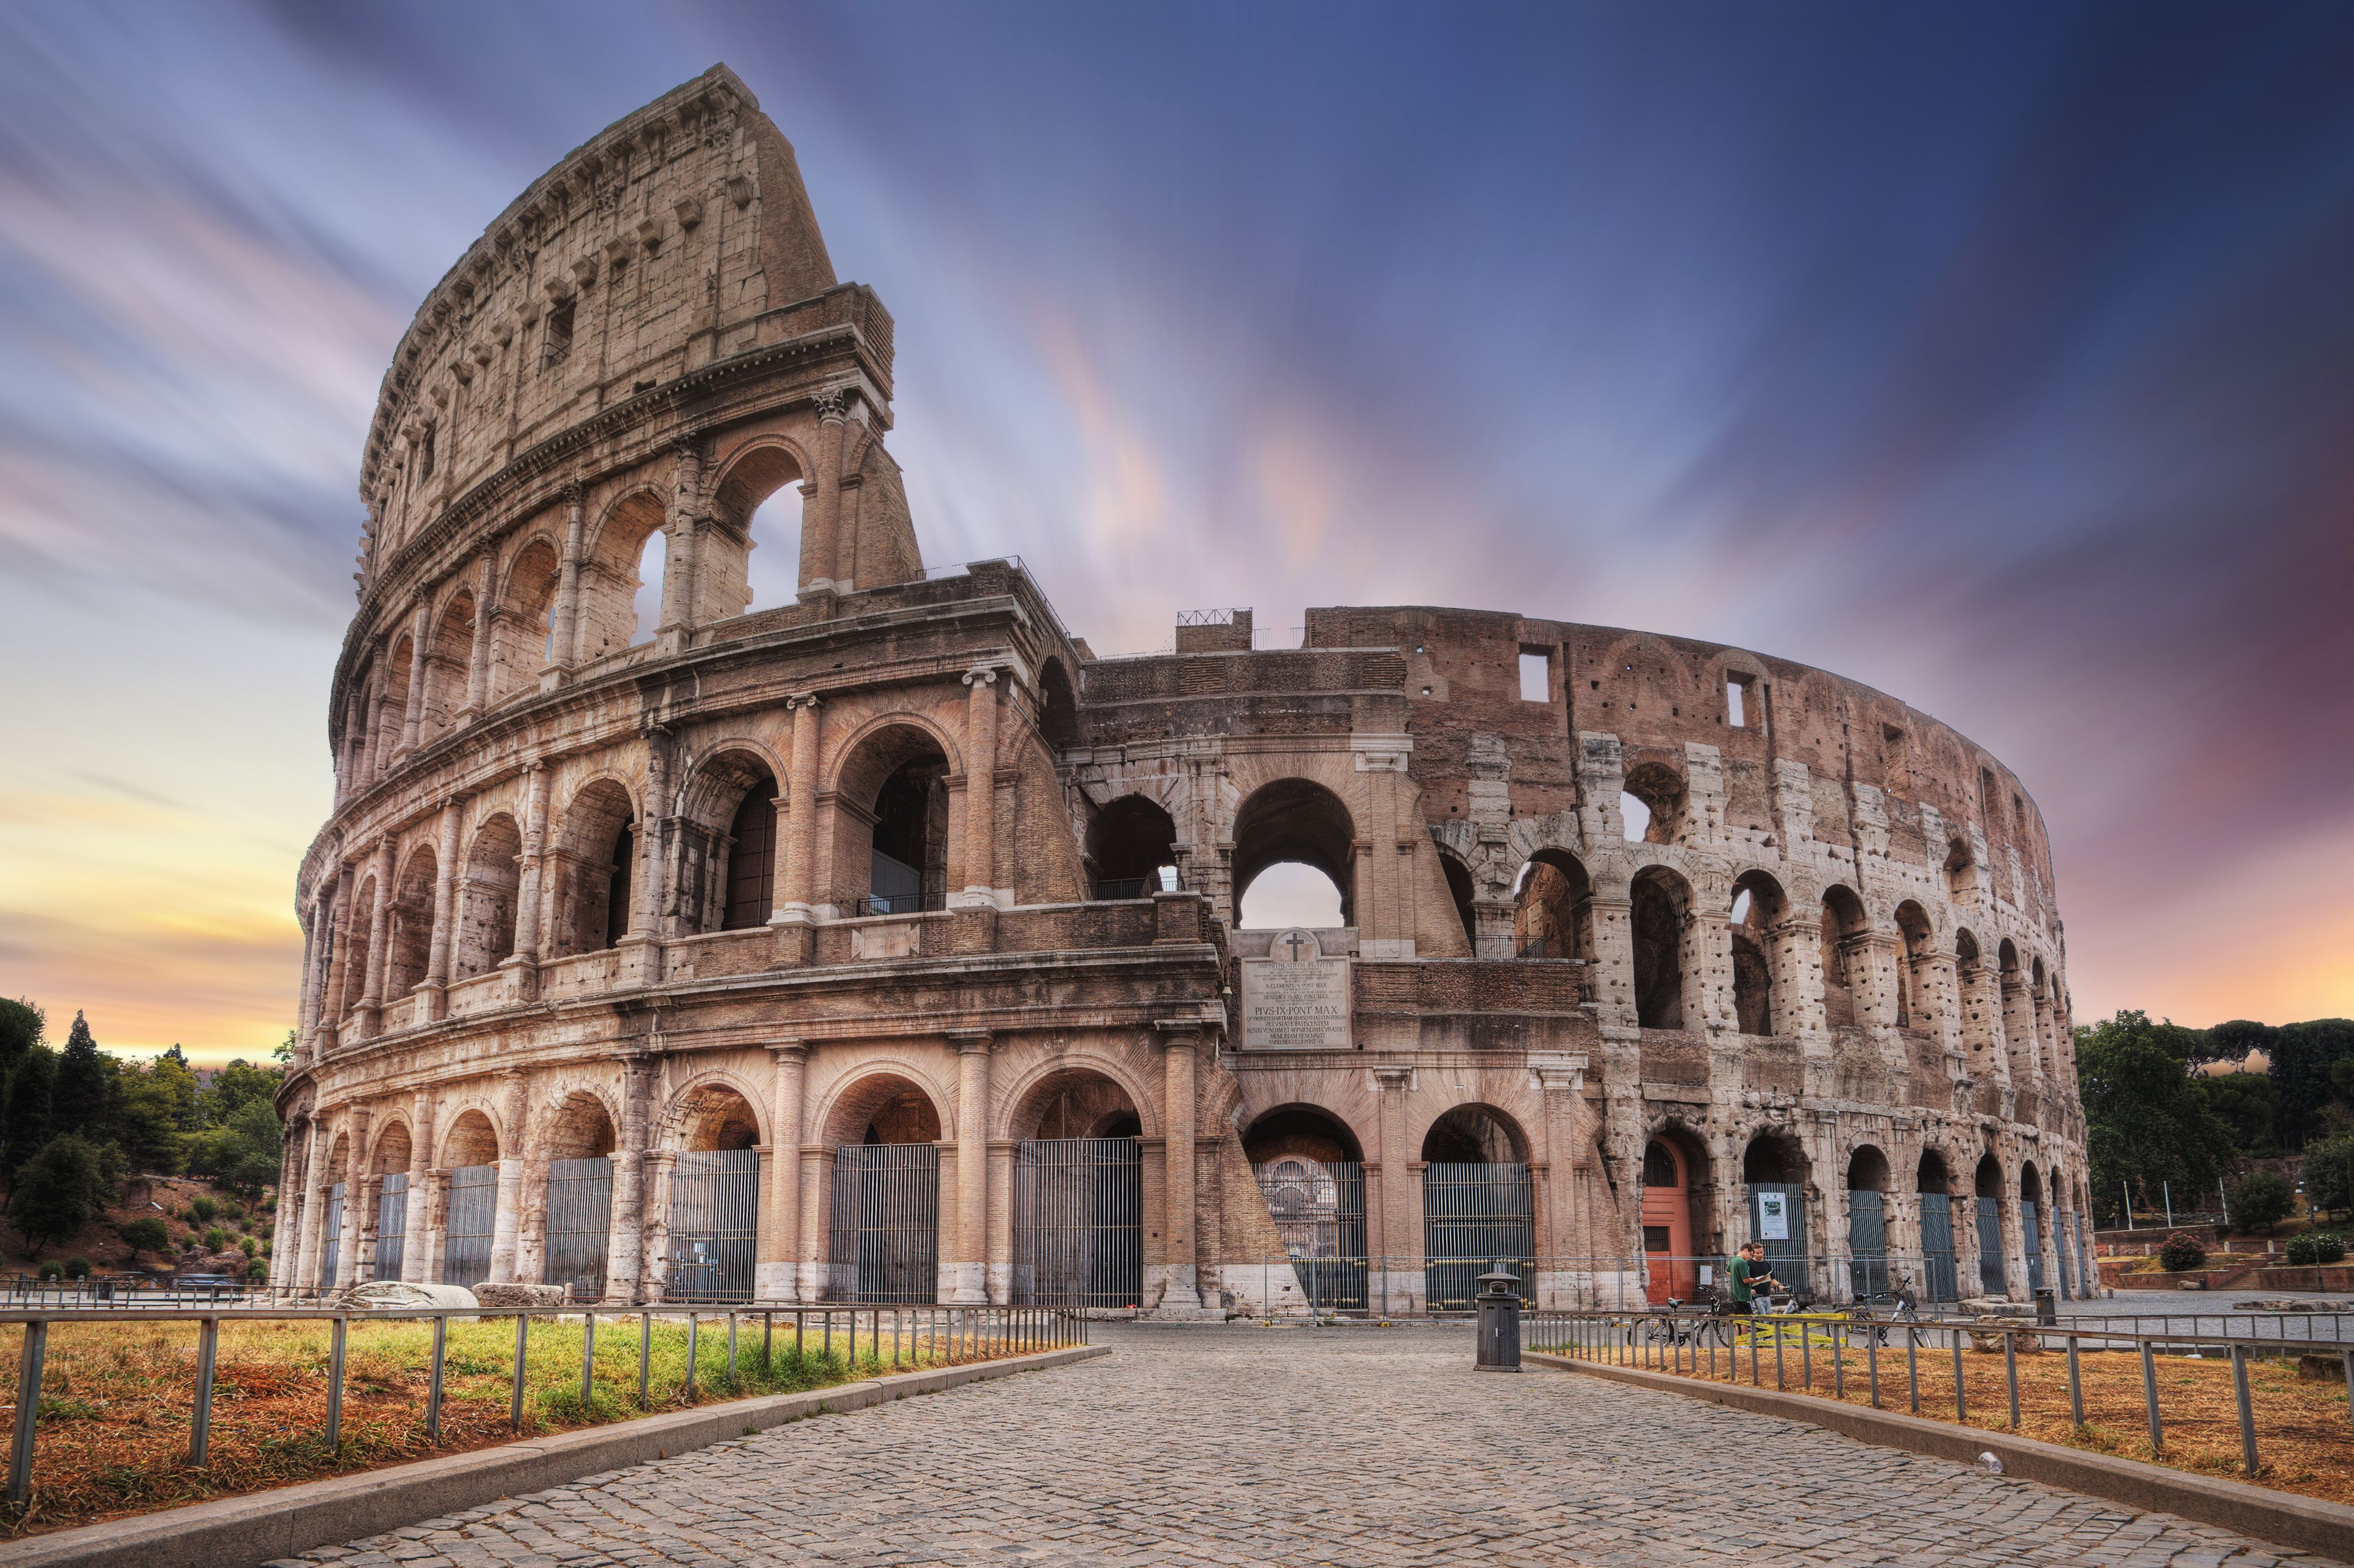 Sunrise at the Colosseum, Rome, Italy